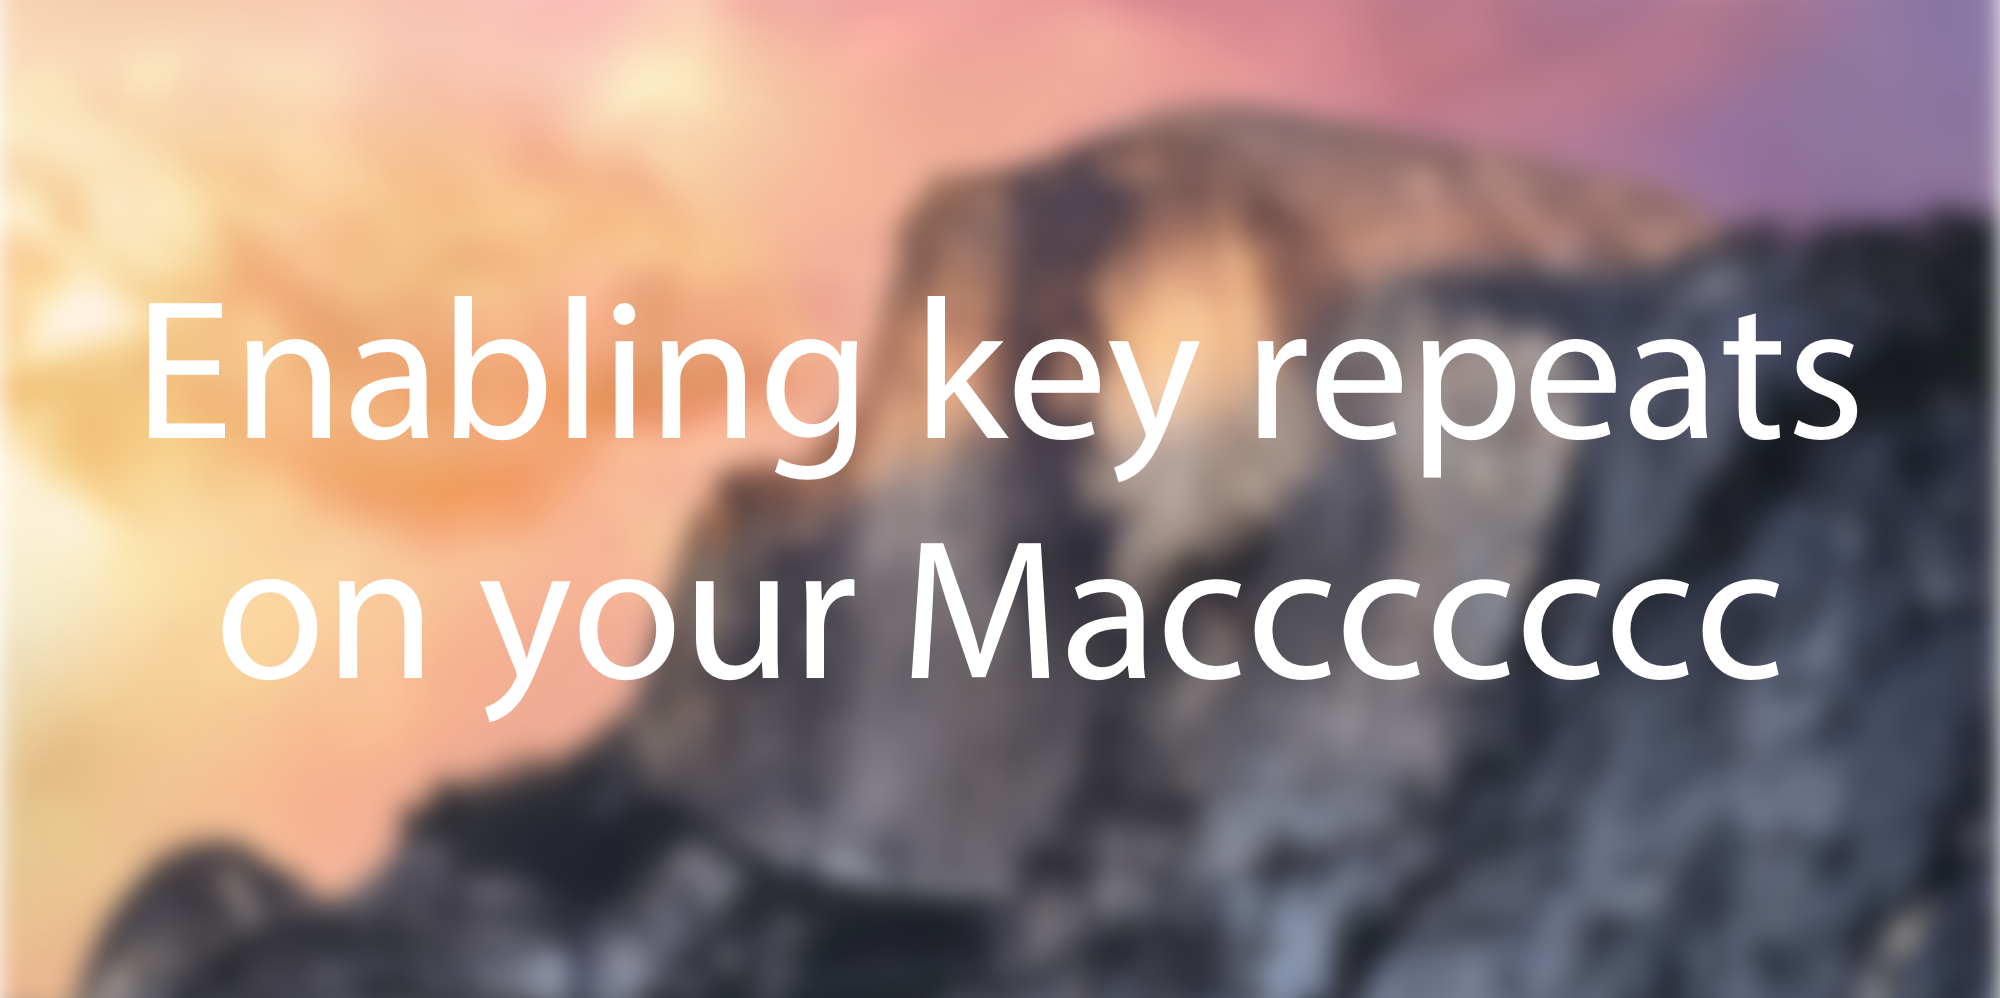 How to enable key repeats on your Mac